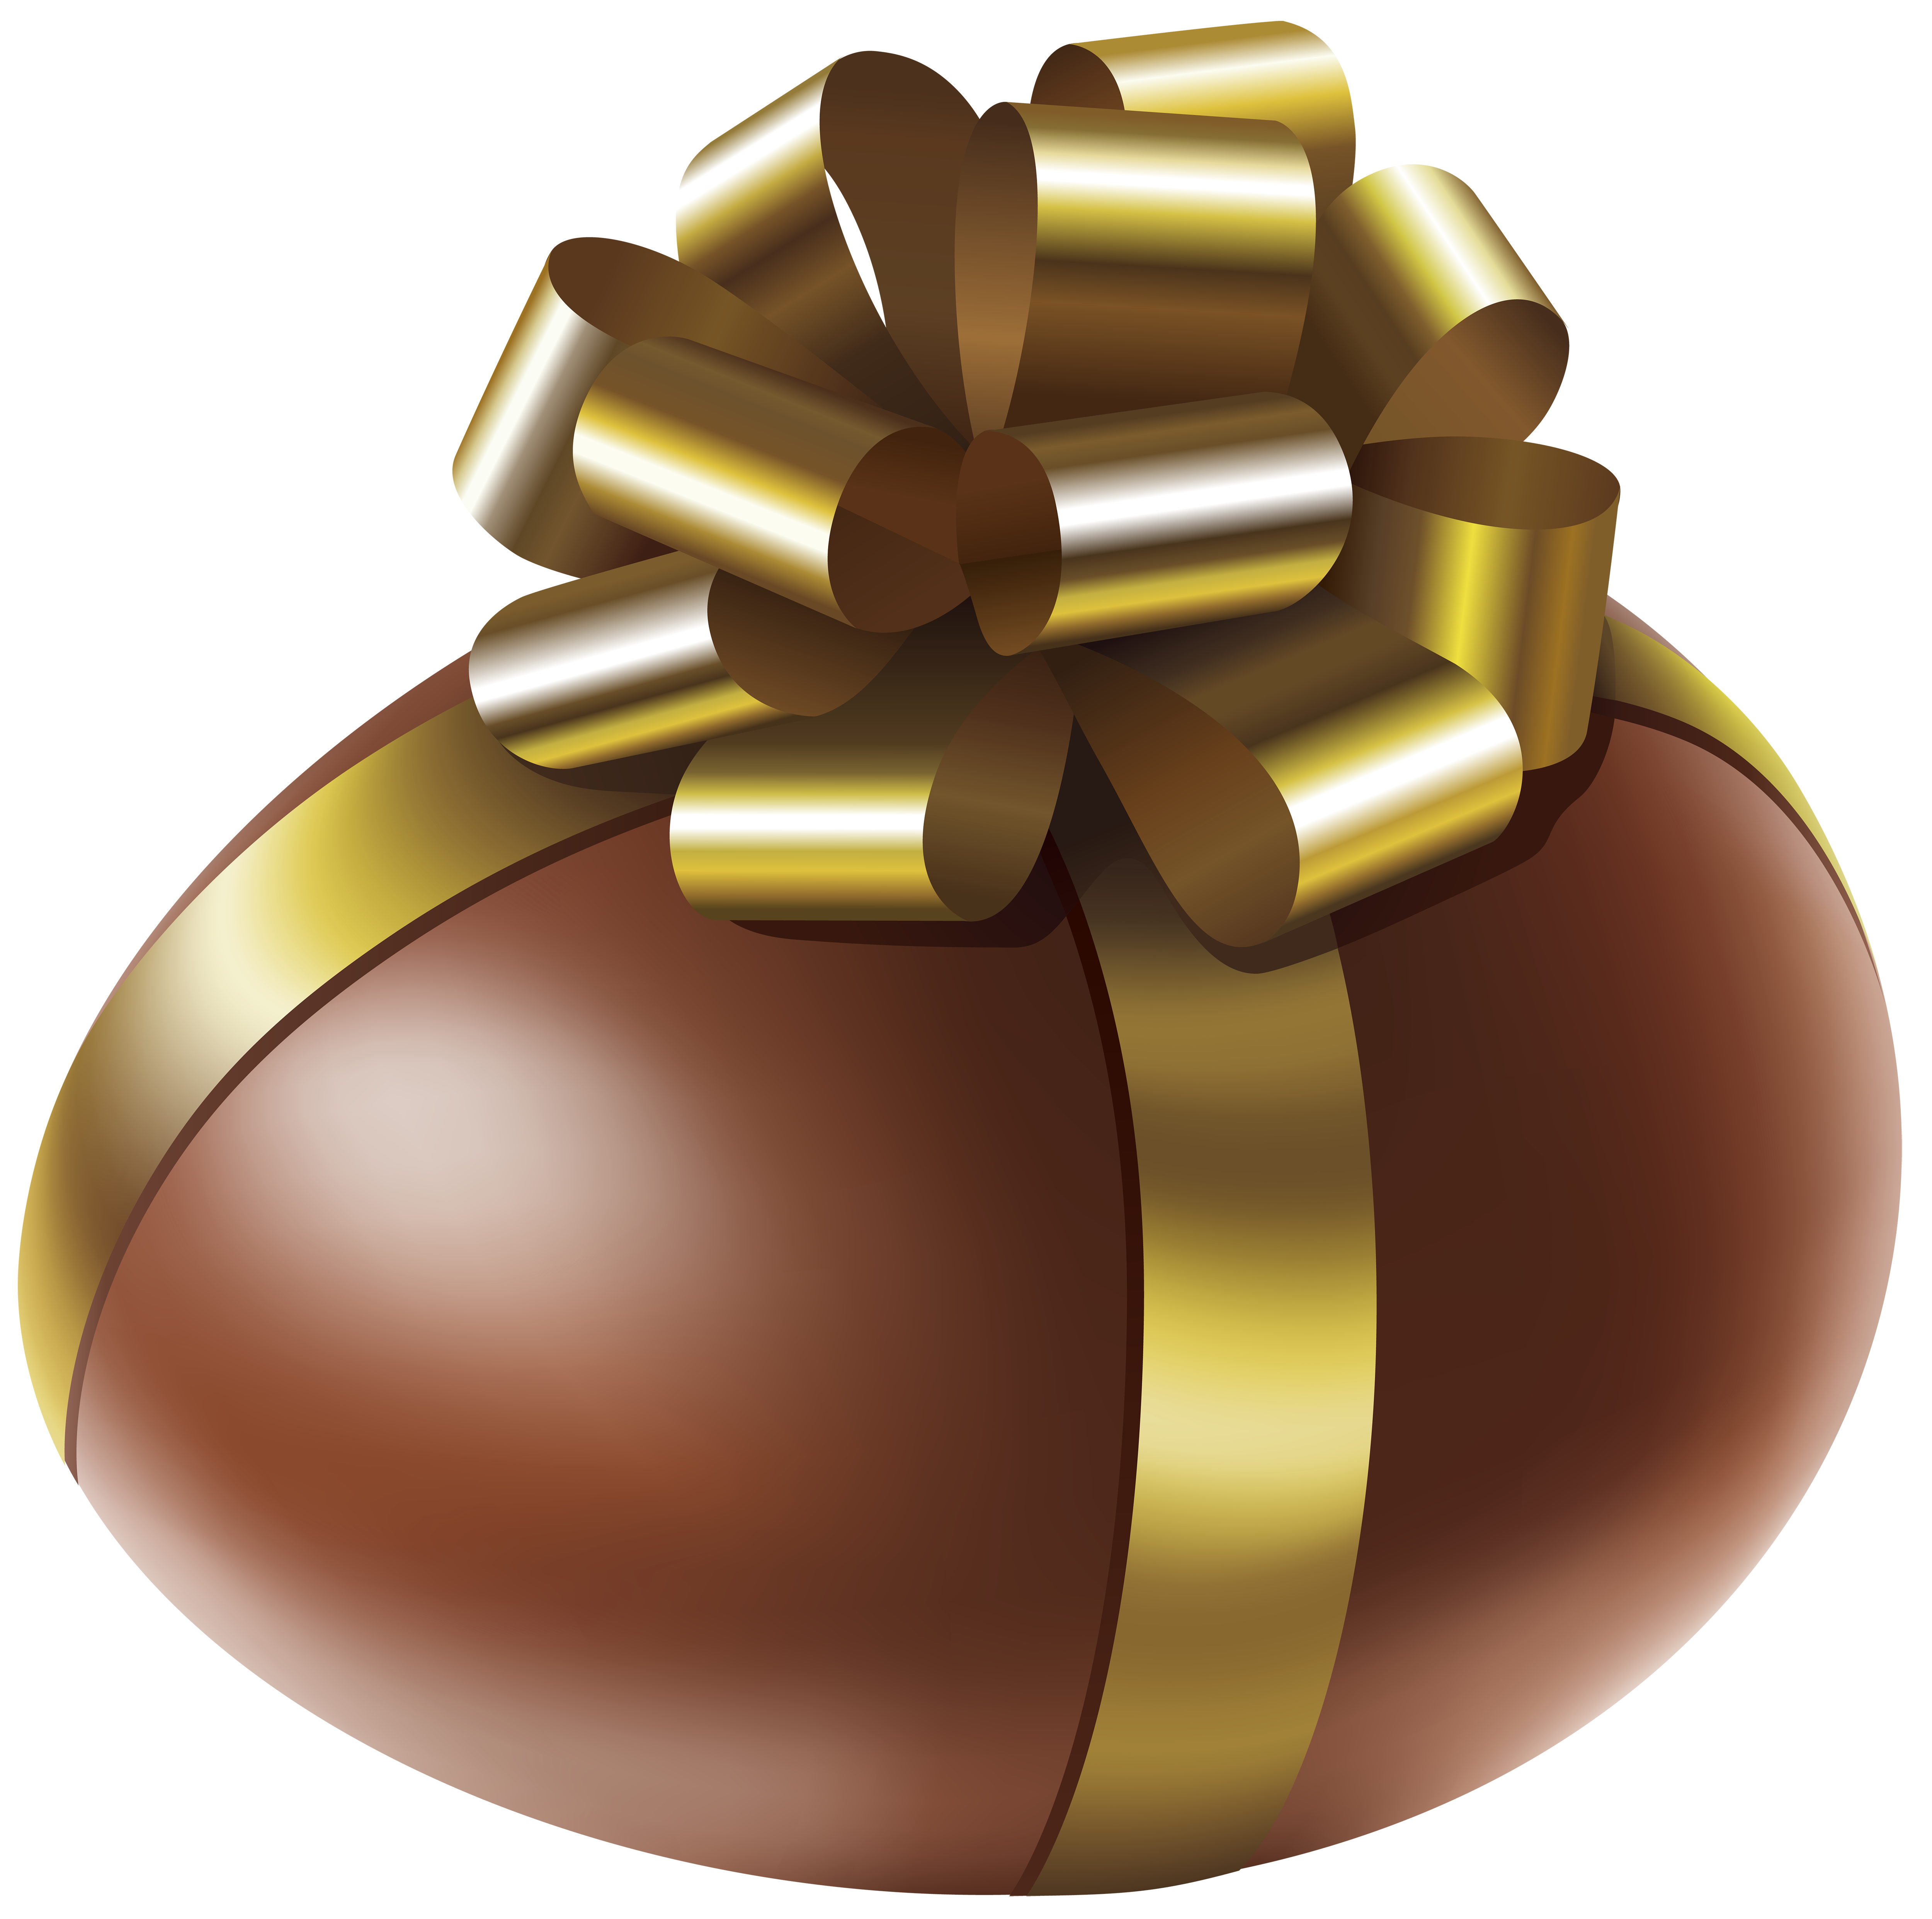 Easter Chocolate Egg with Gold Bow Transparent PNG Clip Art Image.